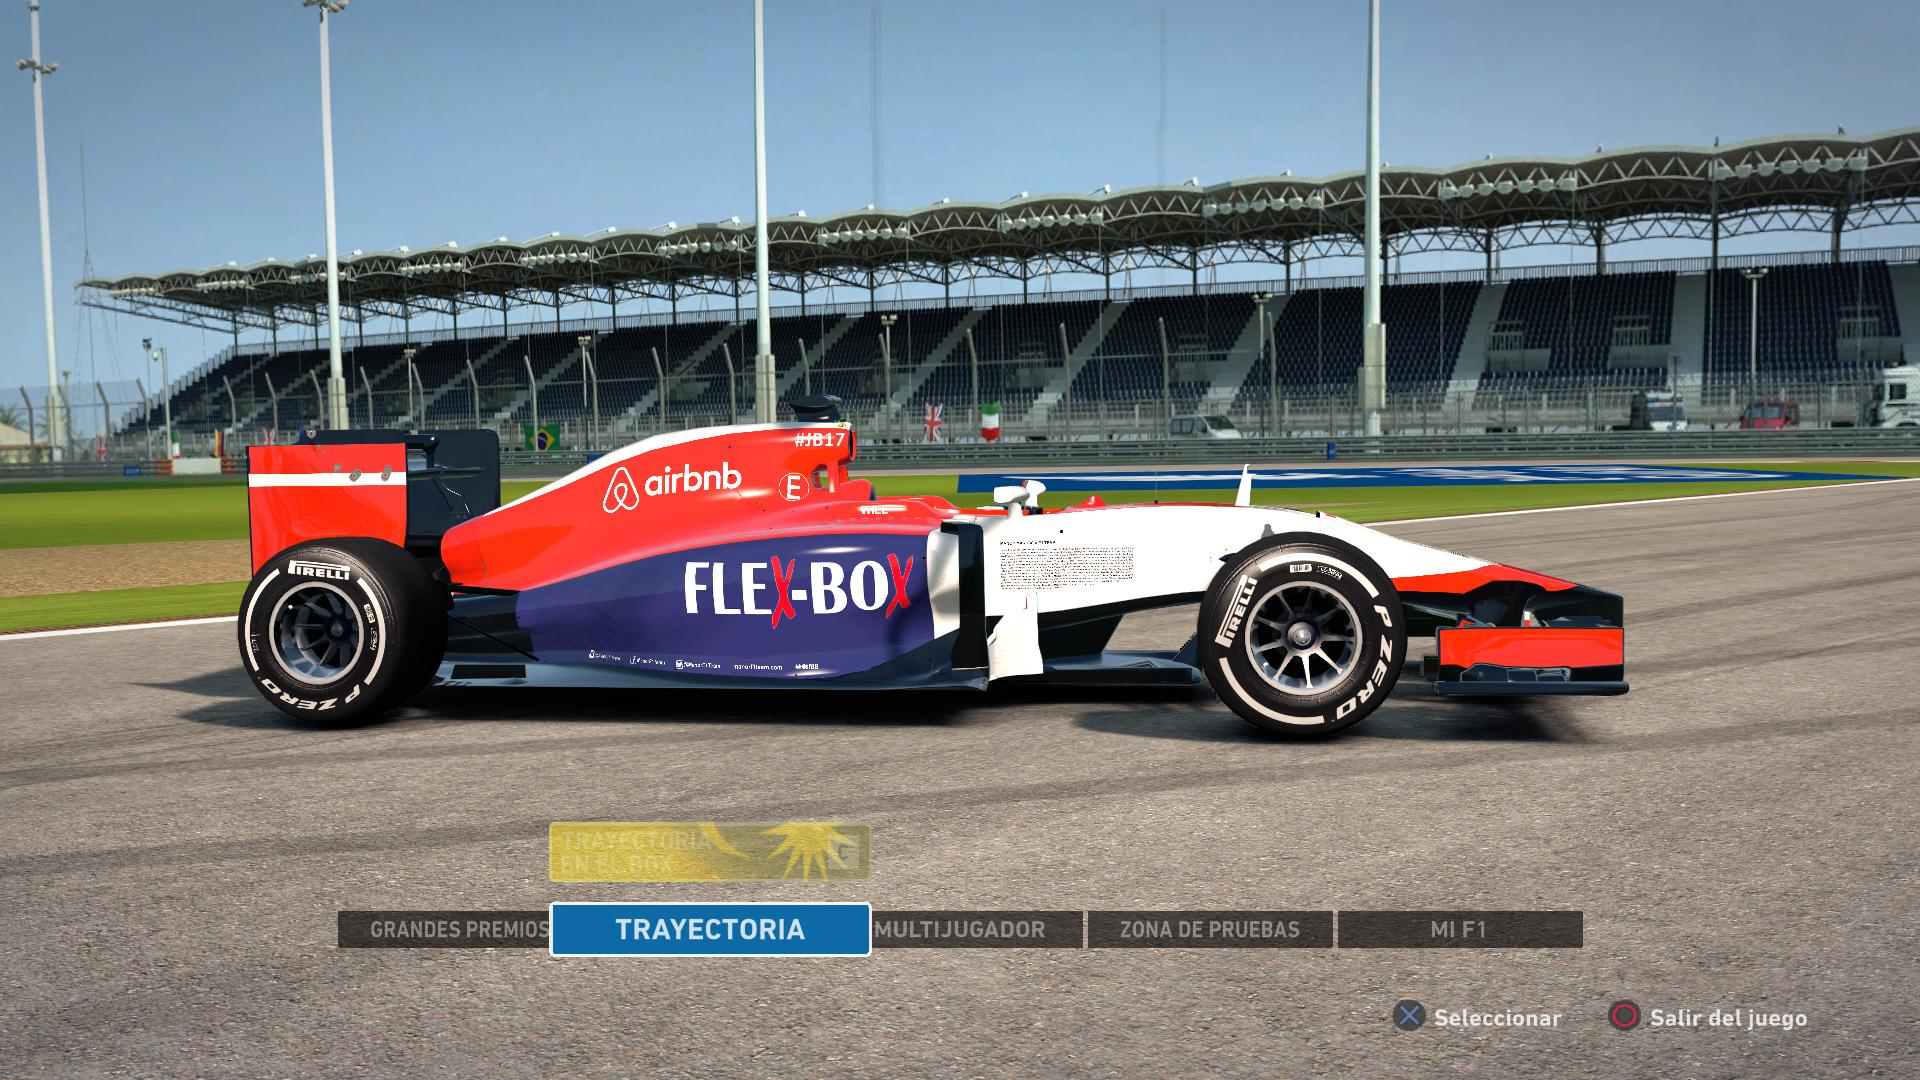 F1 2014 Manor 2015 GP Silverstone v1.0